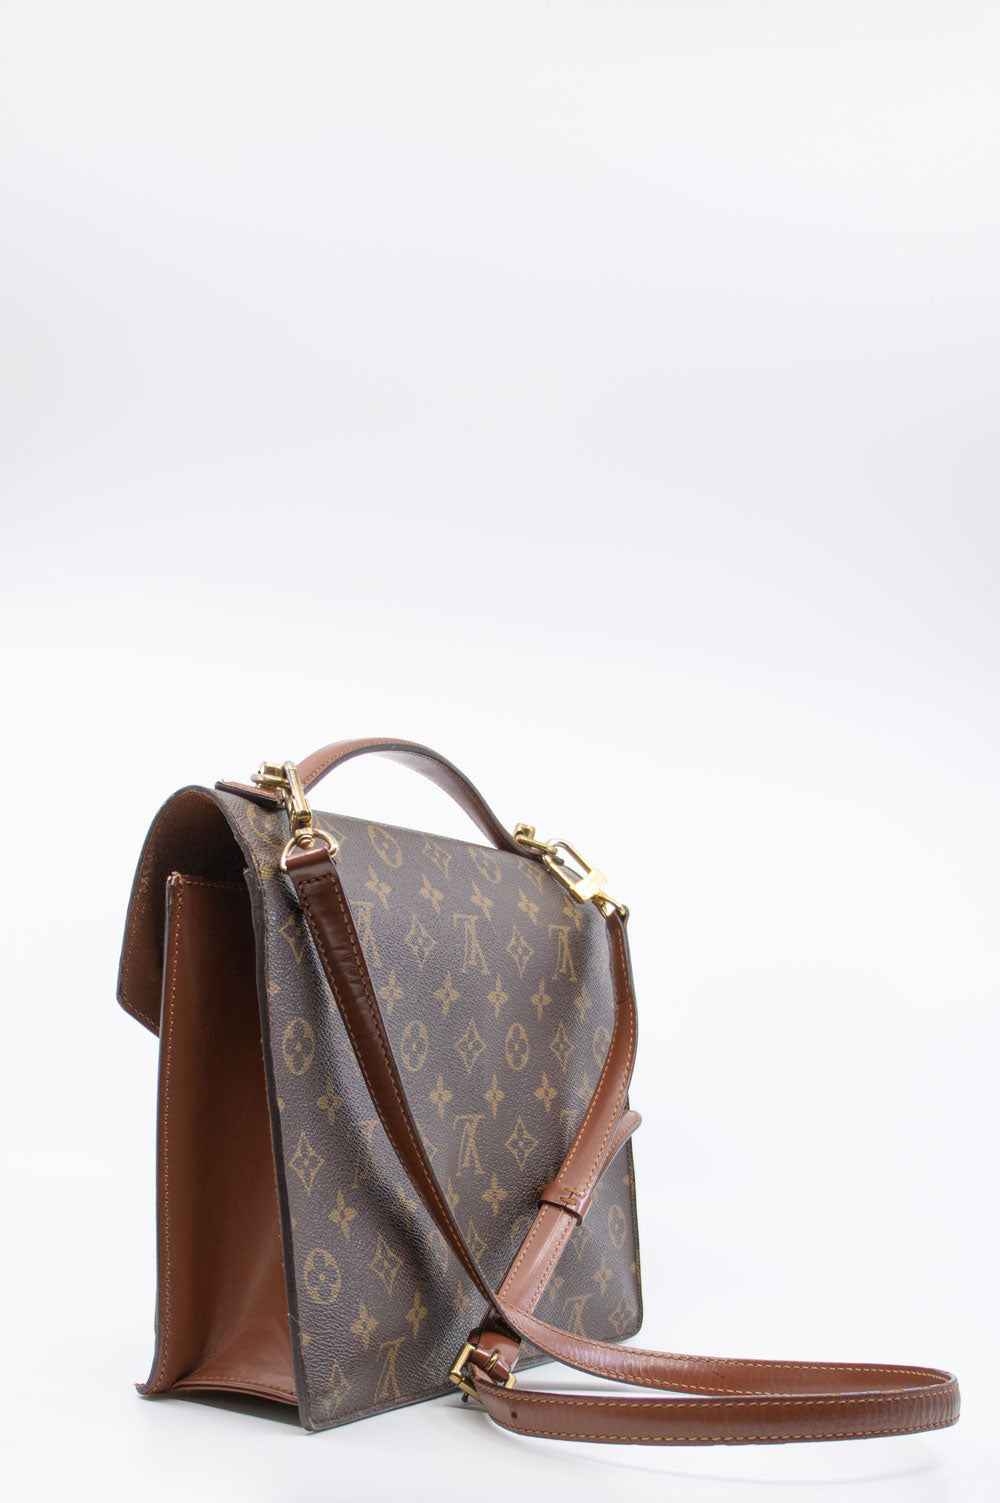 Louis Vuitton Monceau Bag